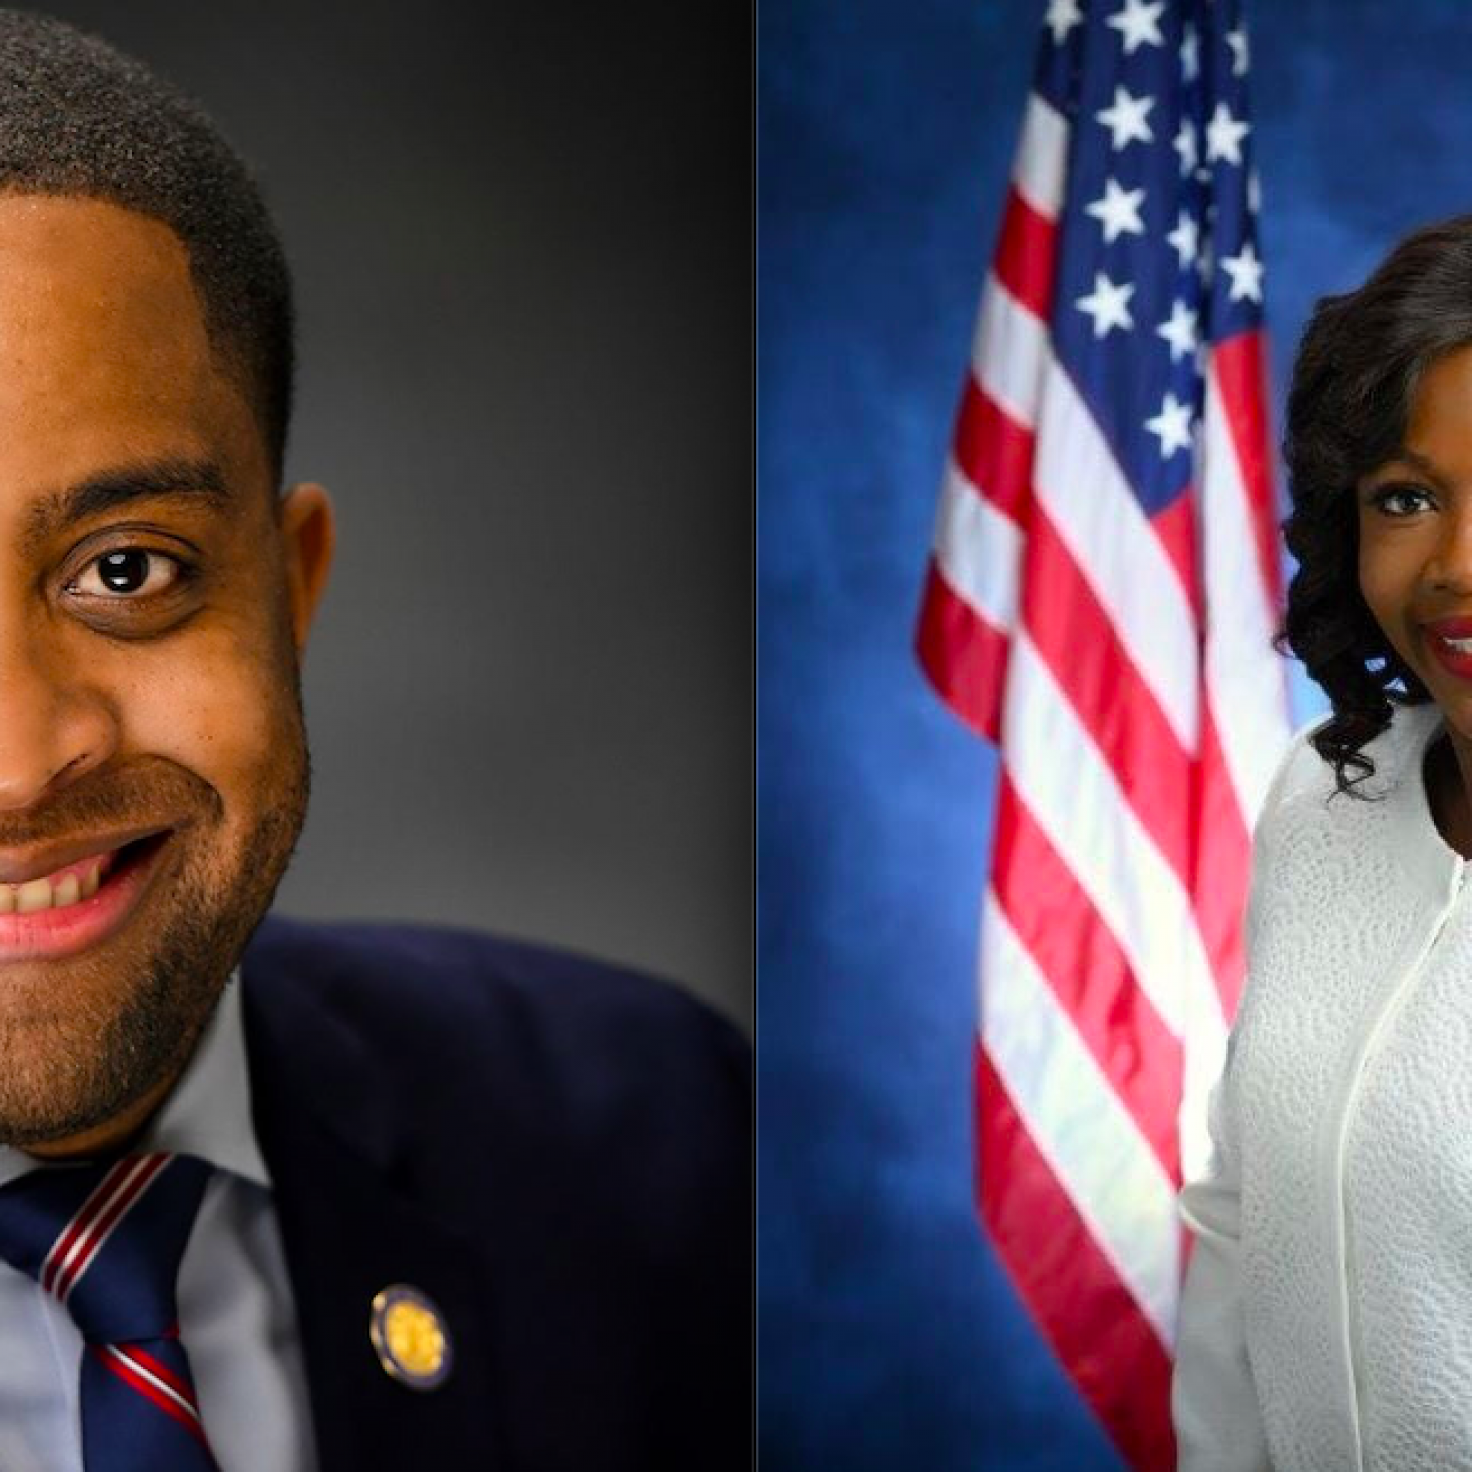 These Black Legislators Went Out To Protest With Constituents…And Then They Got Pepper Sprayed